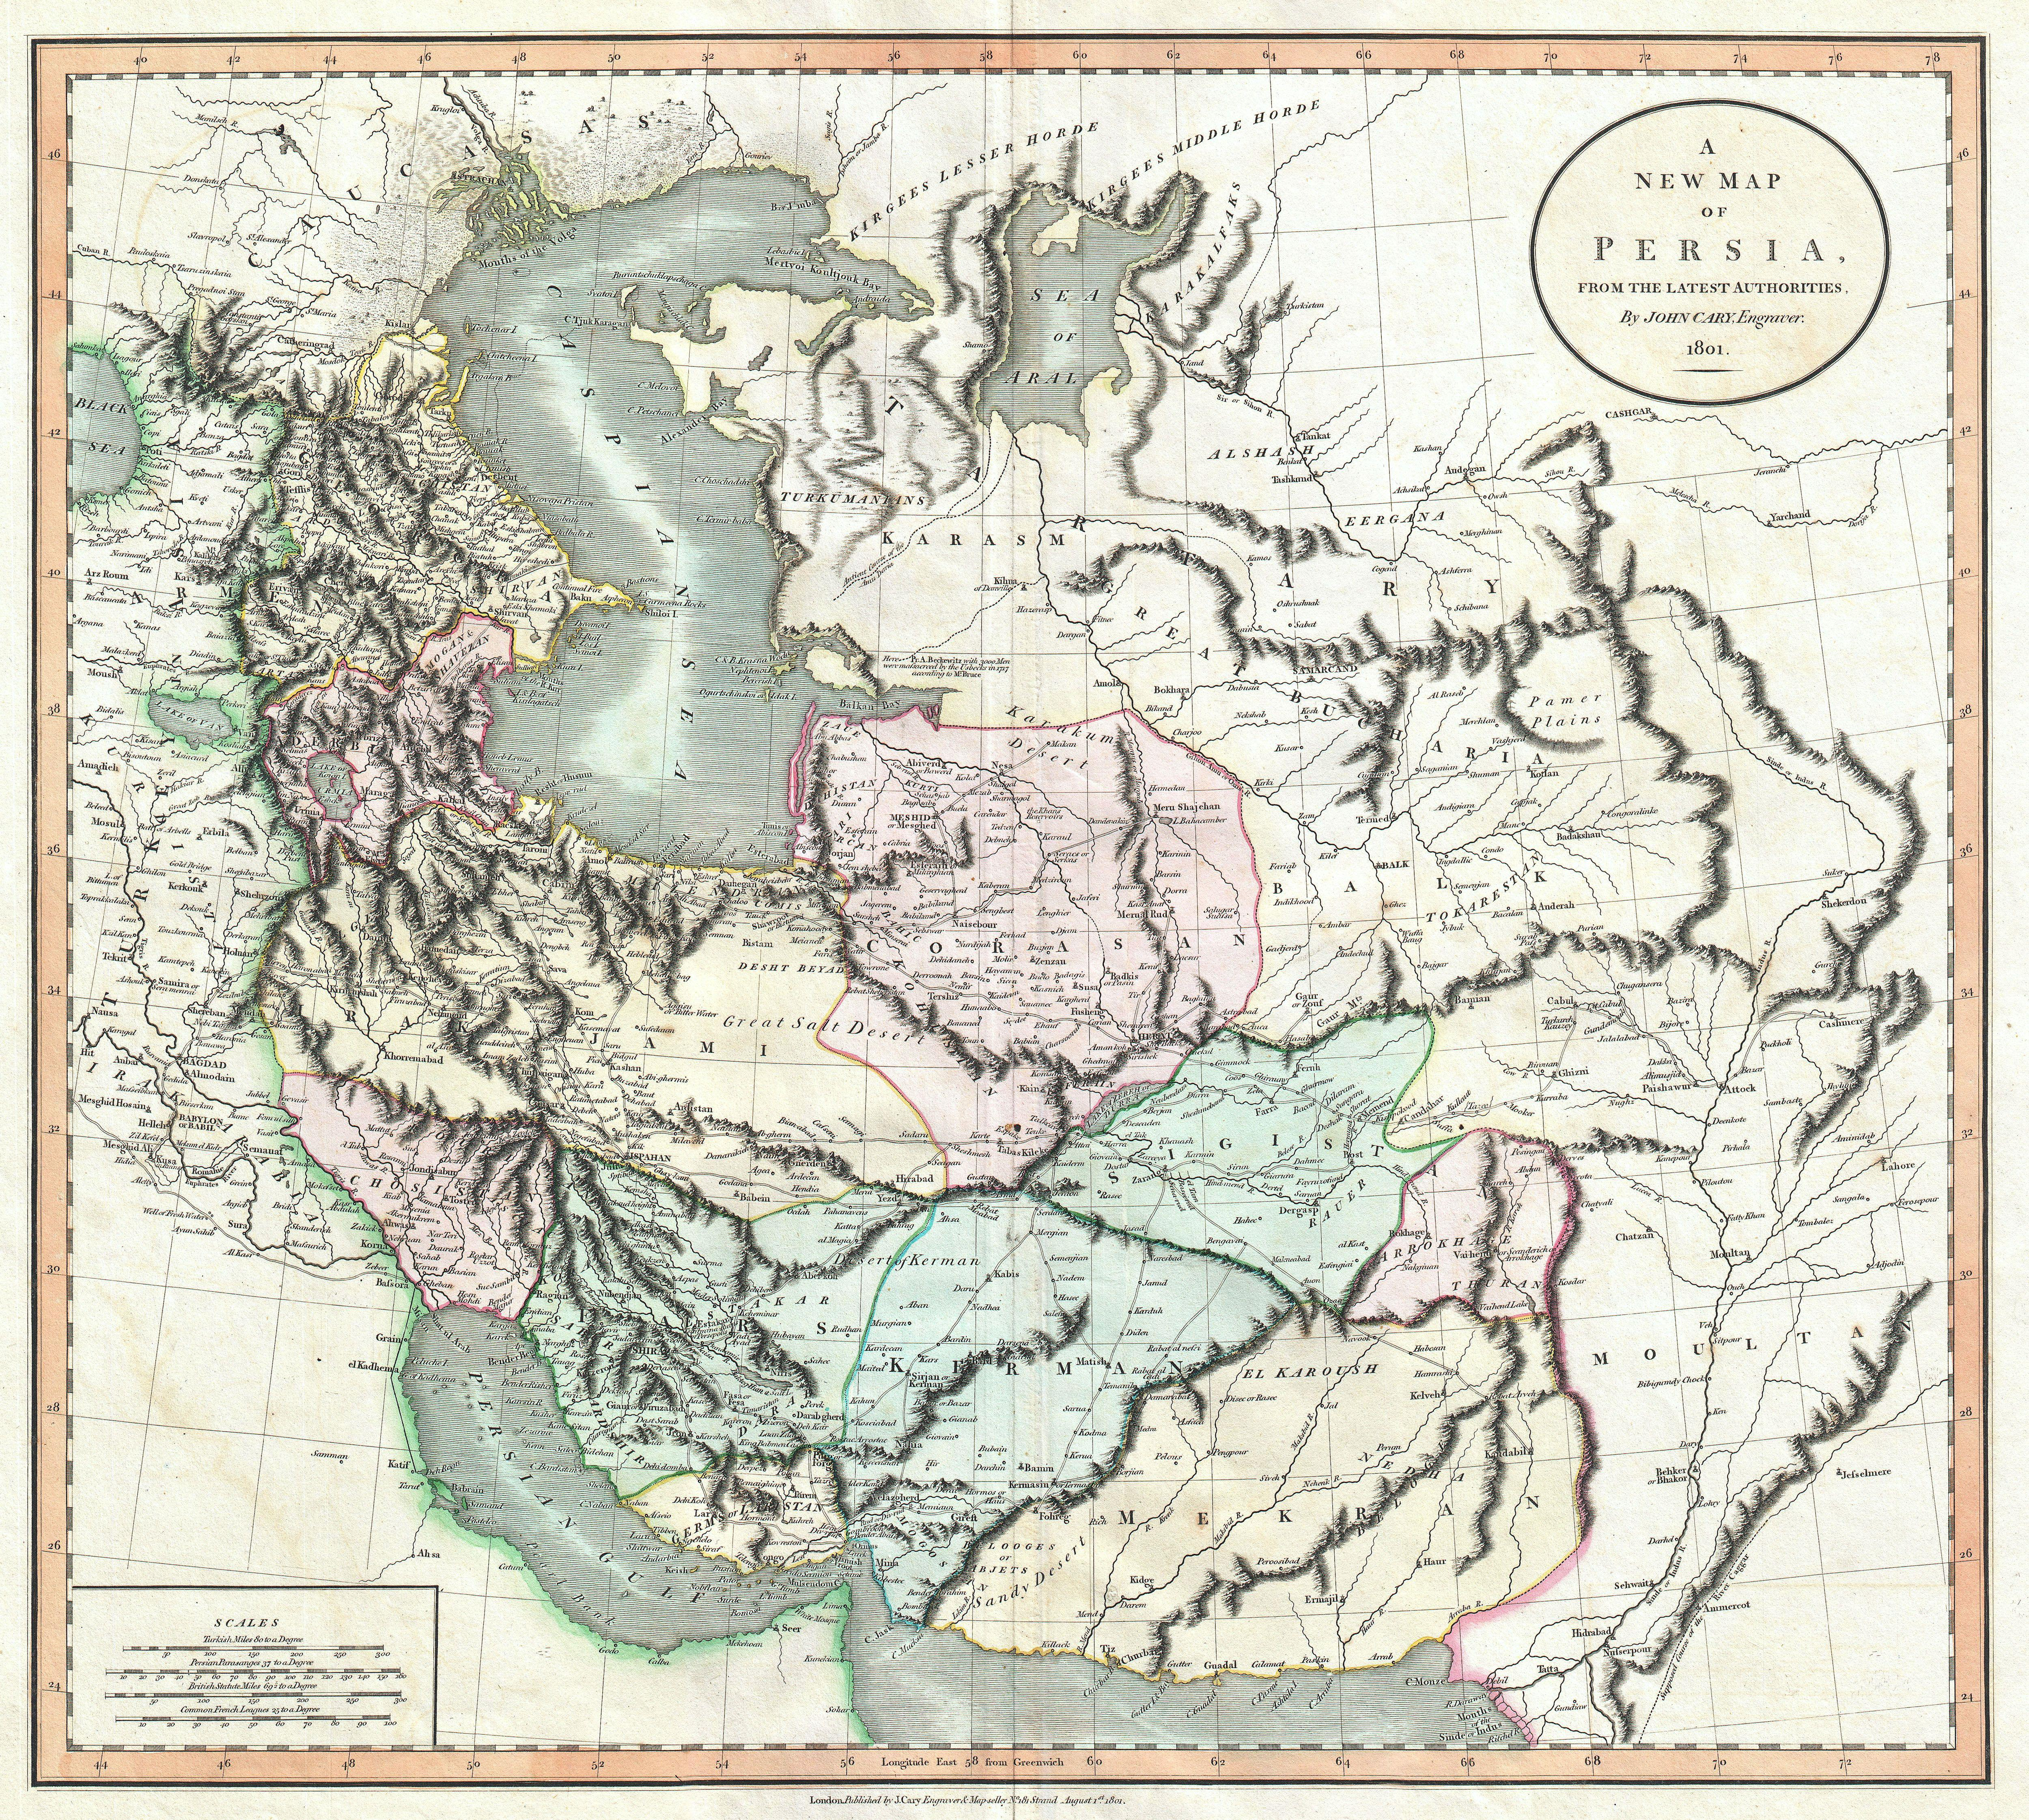 Datoteka1801 cary map of persia iran iraq afghanistan datoteka1801 cary map of persia iran iraq afghanistan geographicus gumiabroncs Image collections